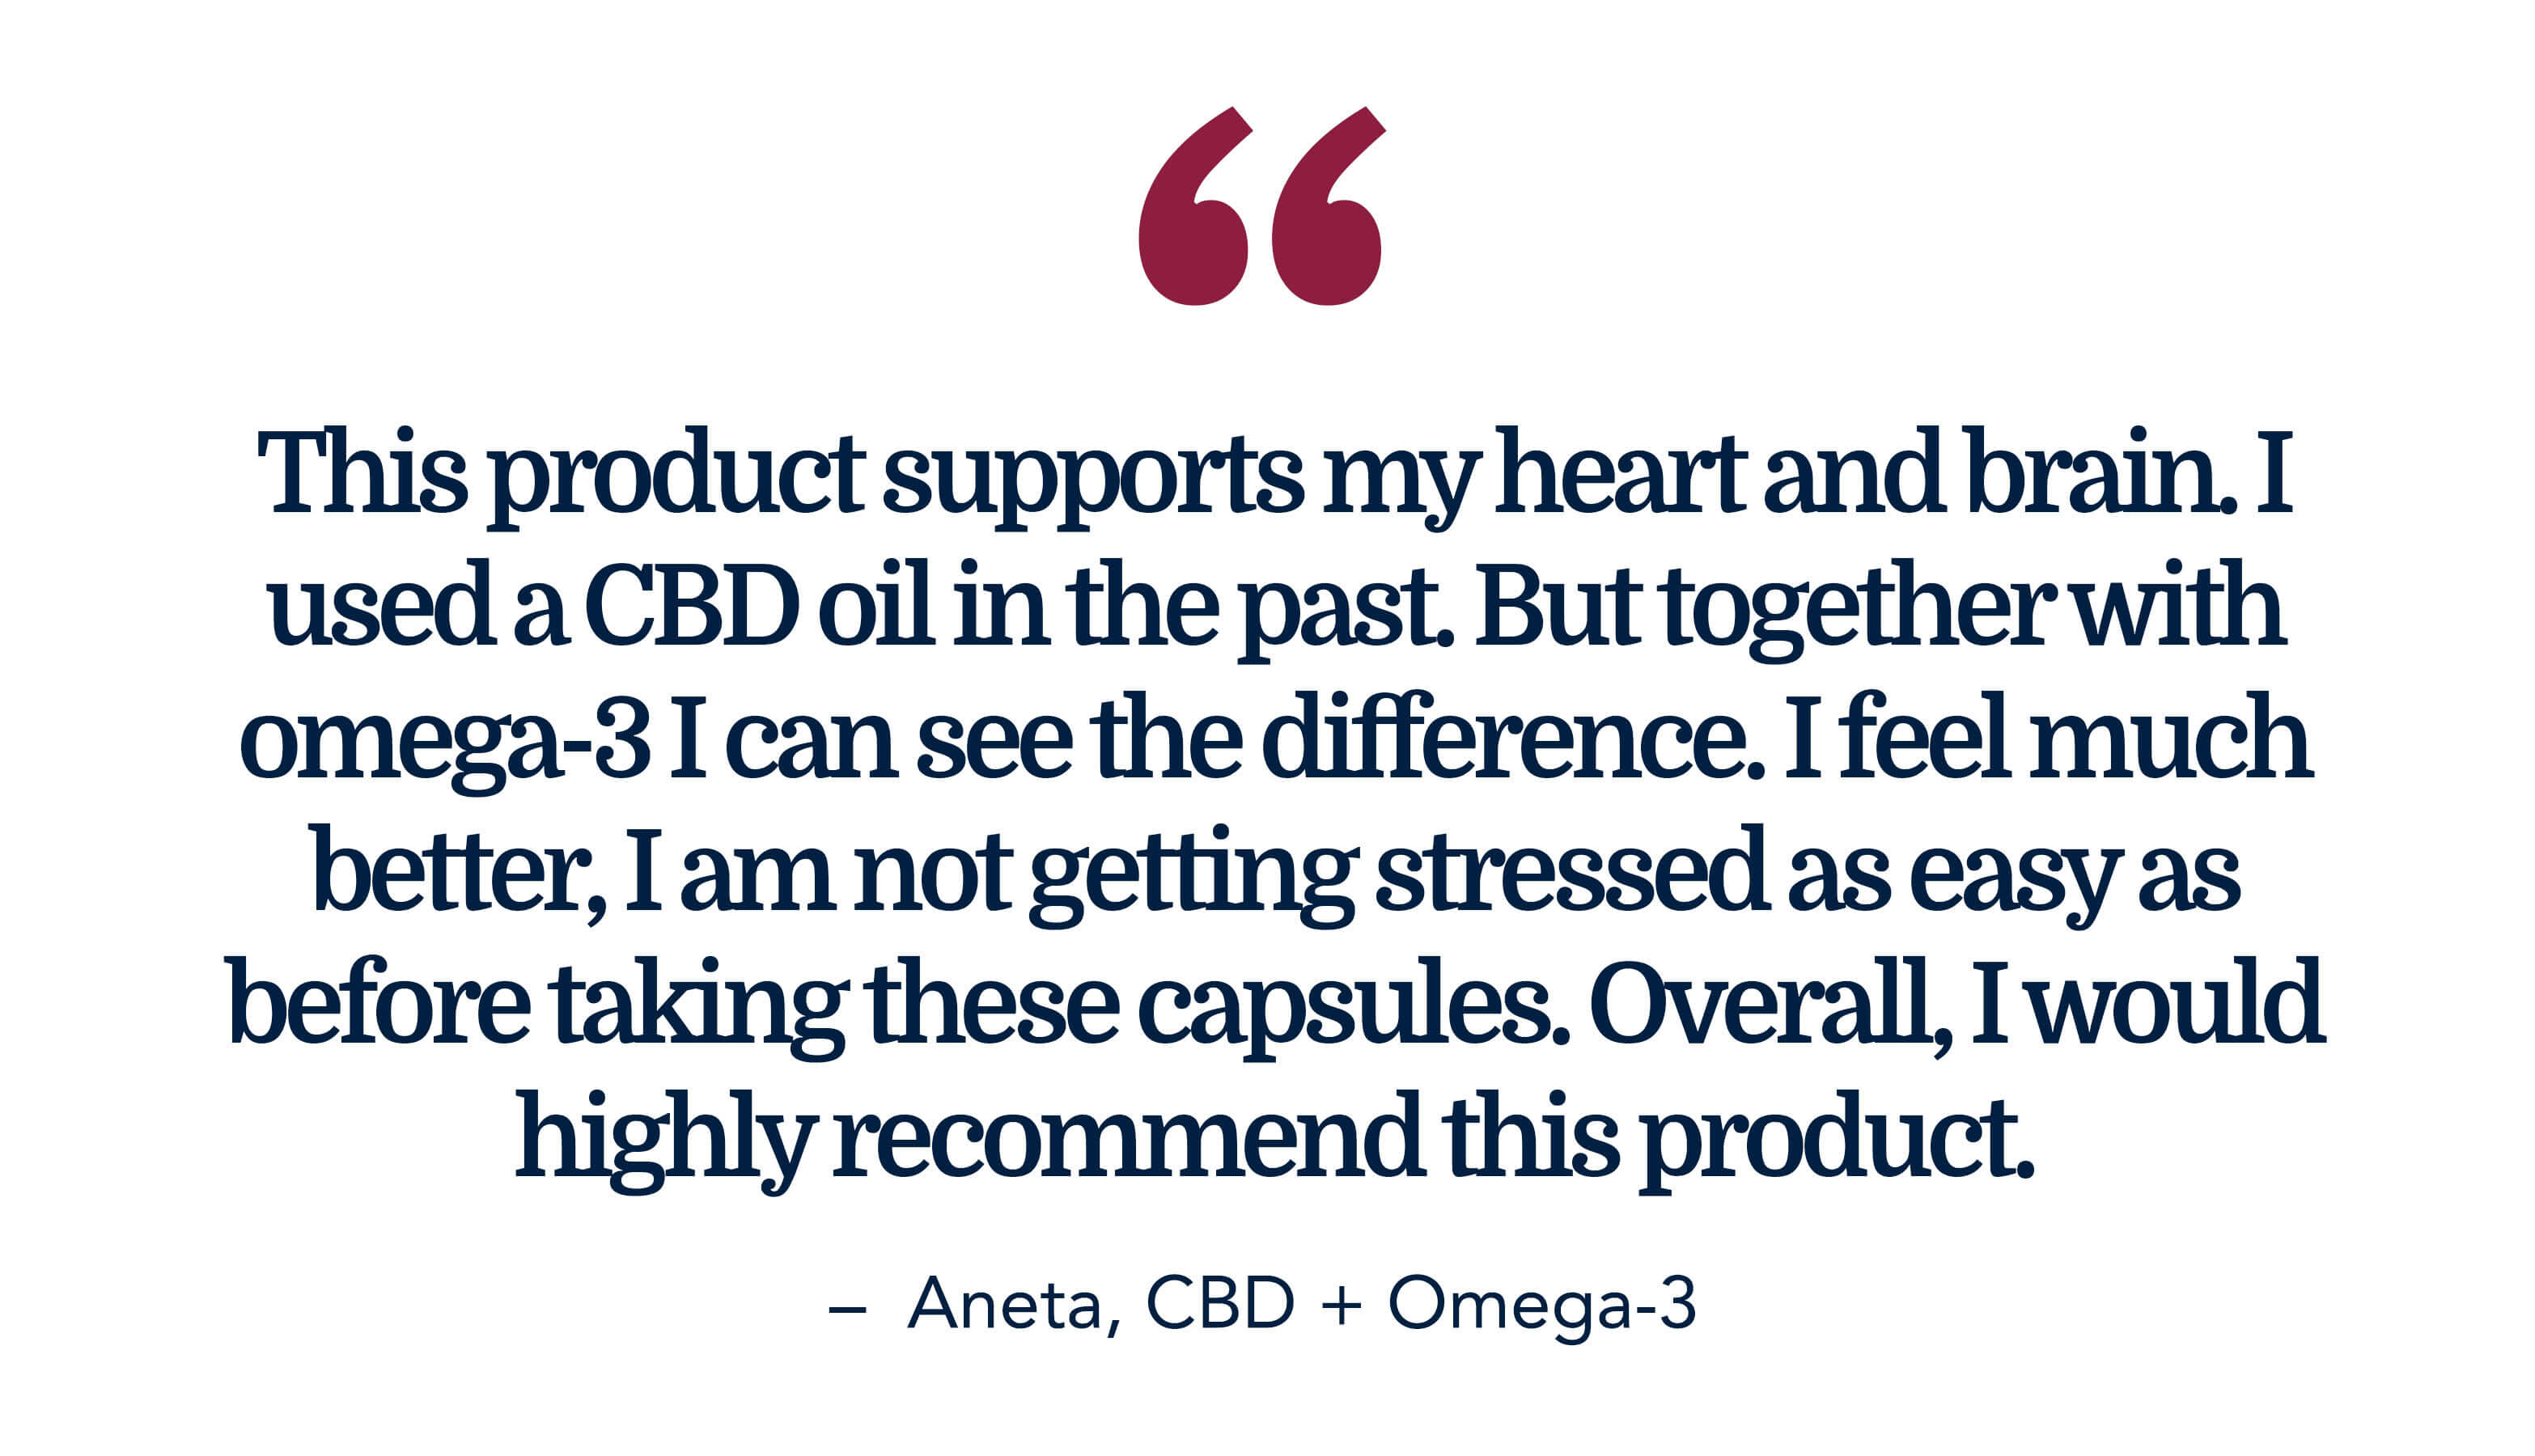 This product supports my heart and brain. I used a CBD oil in the past. But together with omega-3 I can see the difference. I feel much better, I am not getting stressed as easy as before taking these capsules. Overall, I would highly recommend this product. - Aneta CBD + Omega-3